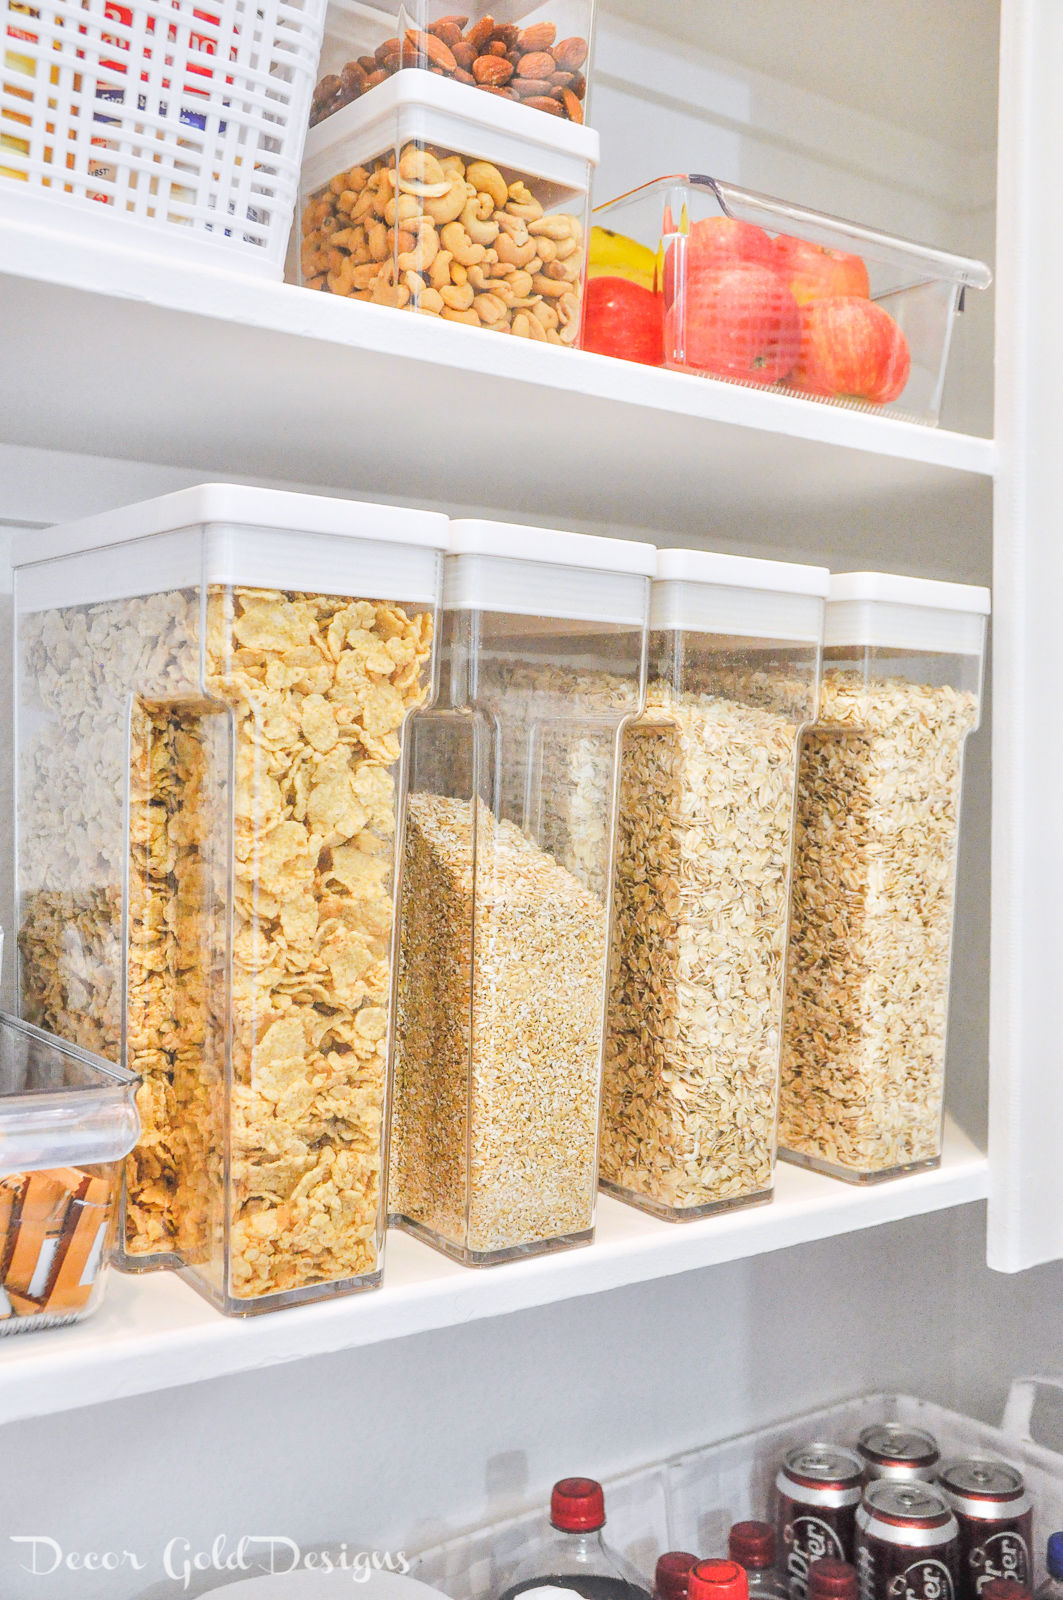 Organized pantry cereal containers